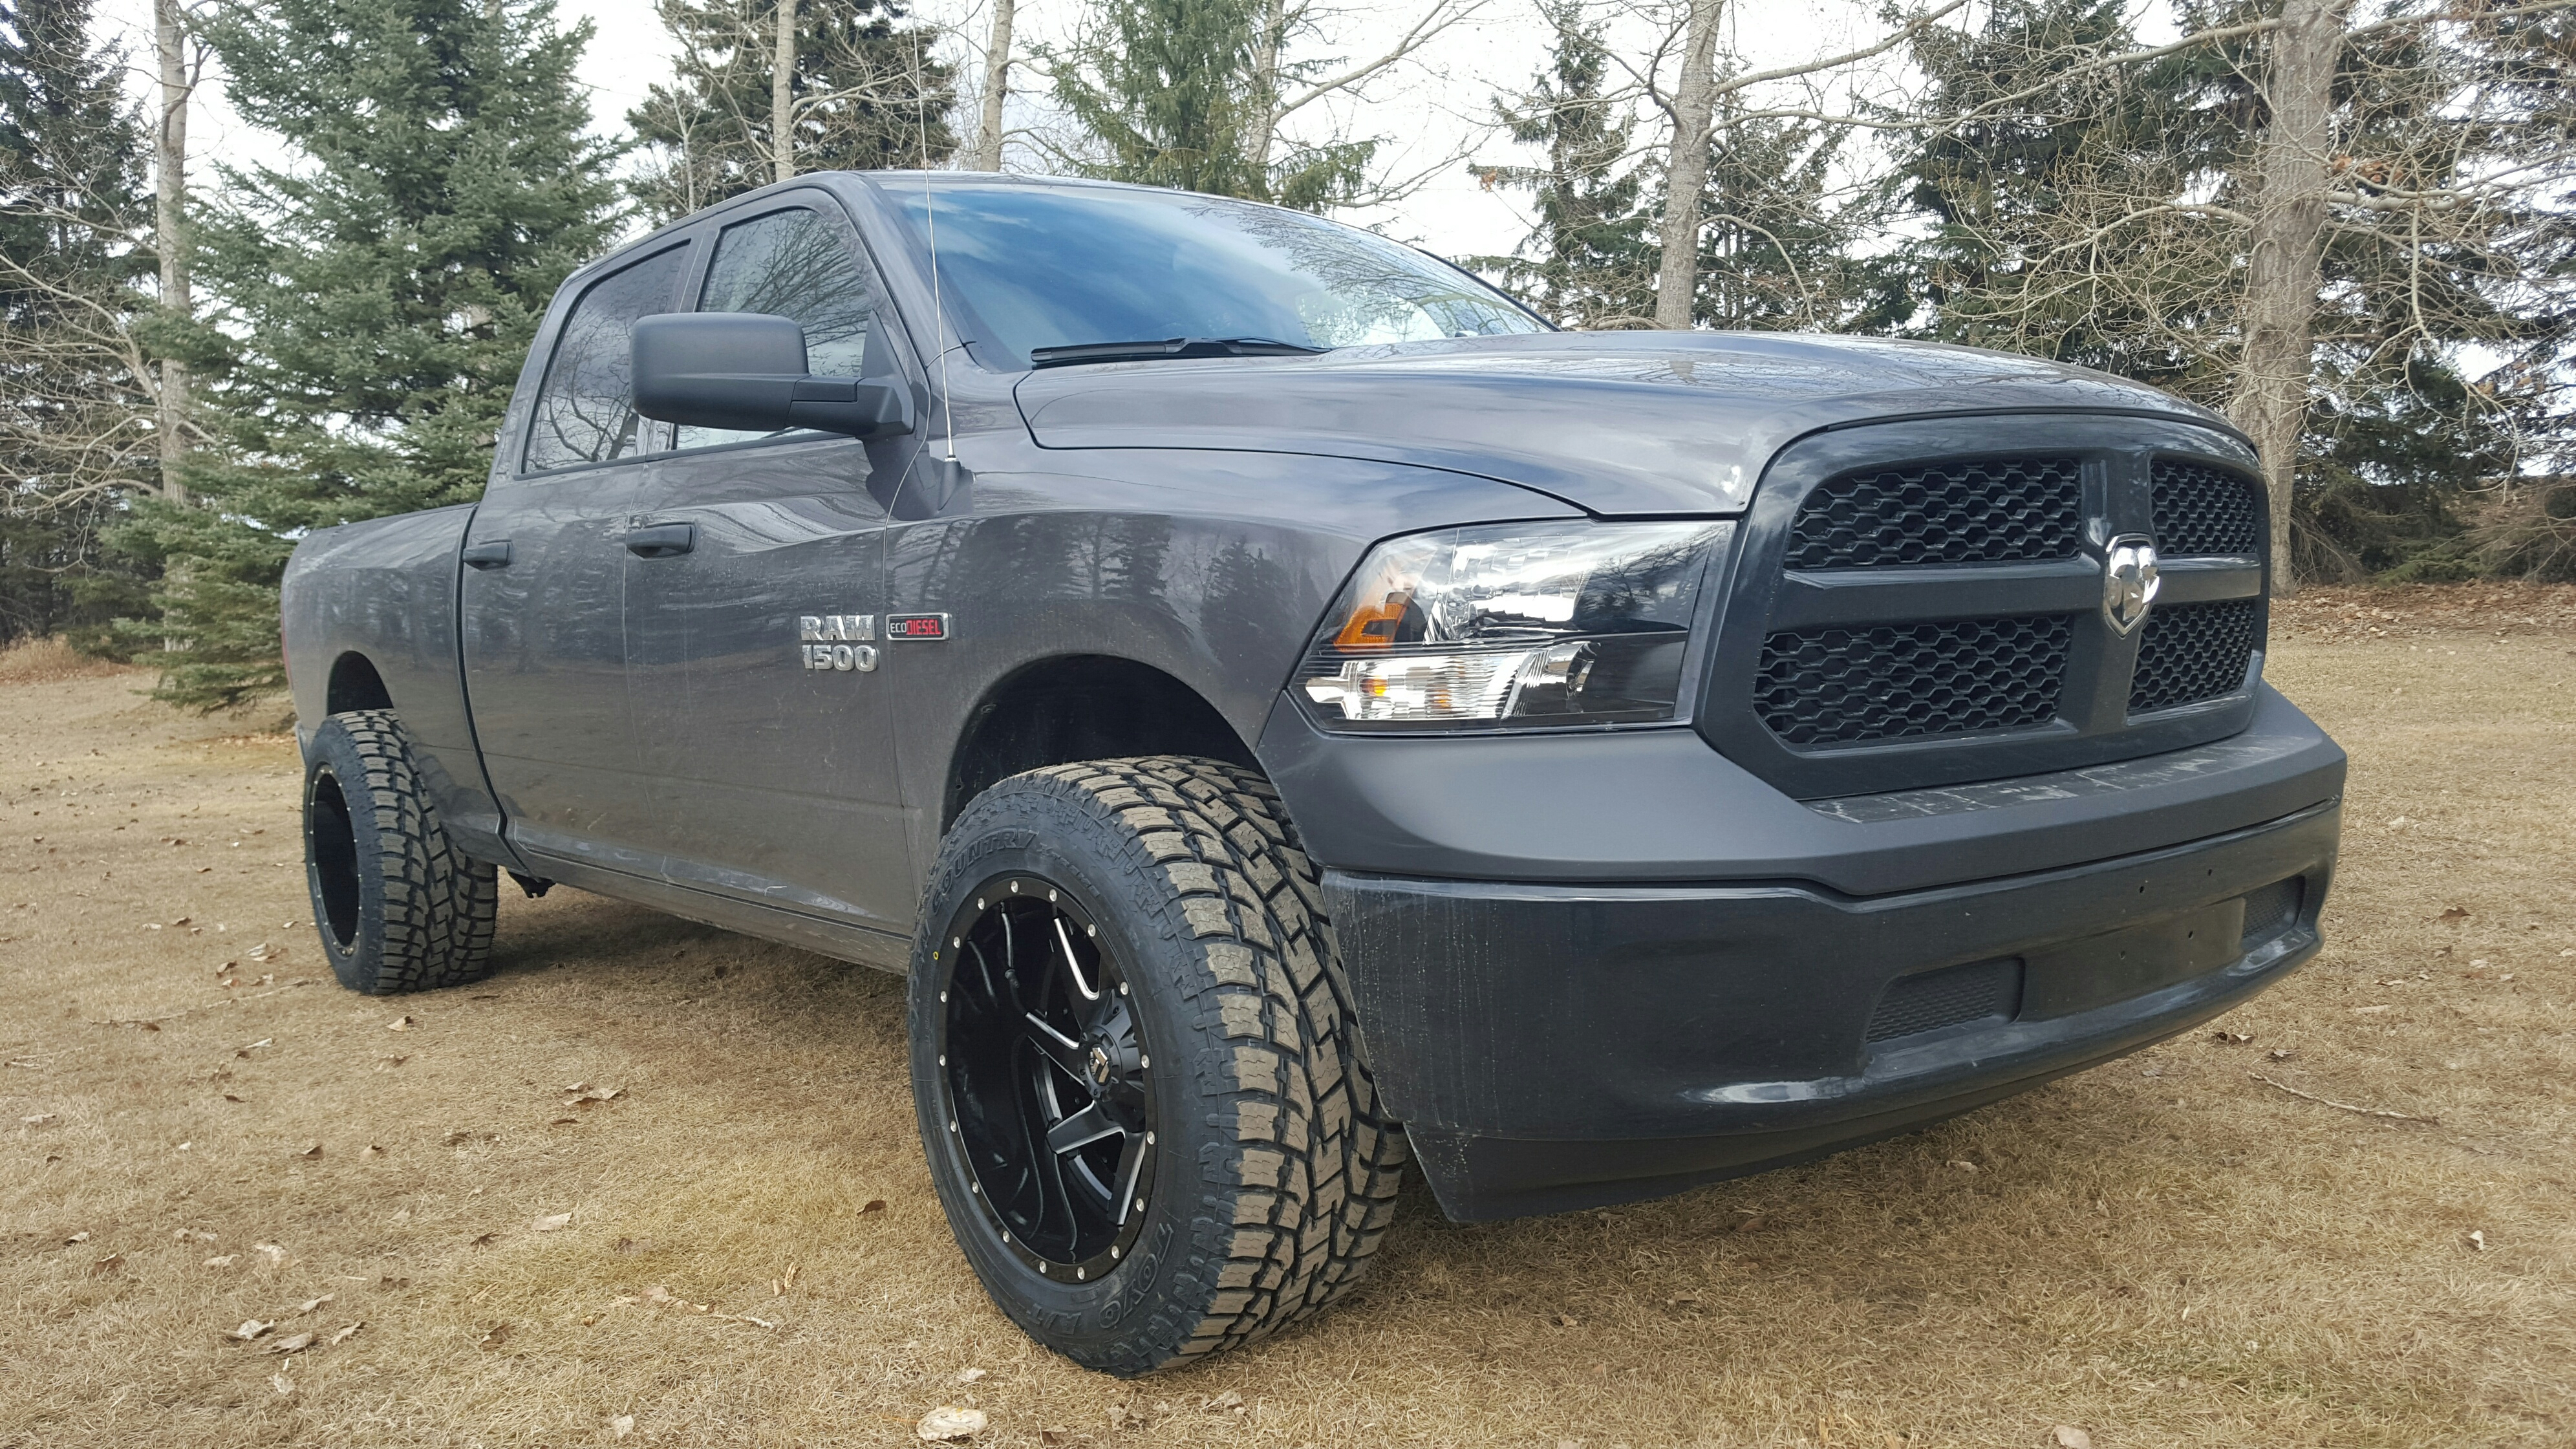 April 2016 ram 1500 diesel truck of the month contest 20160330_154749_resized_1 jpg